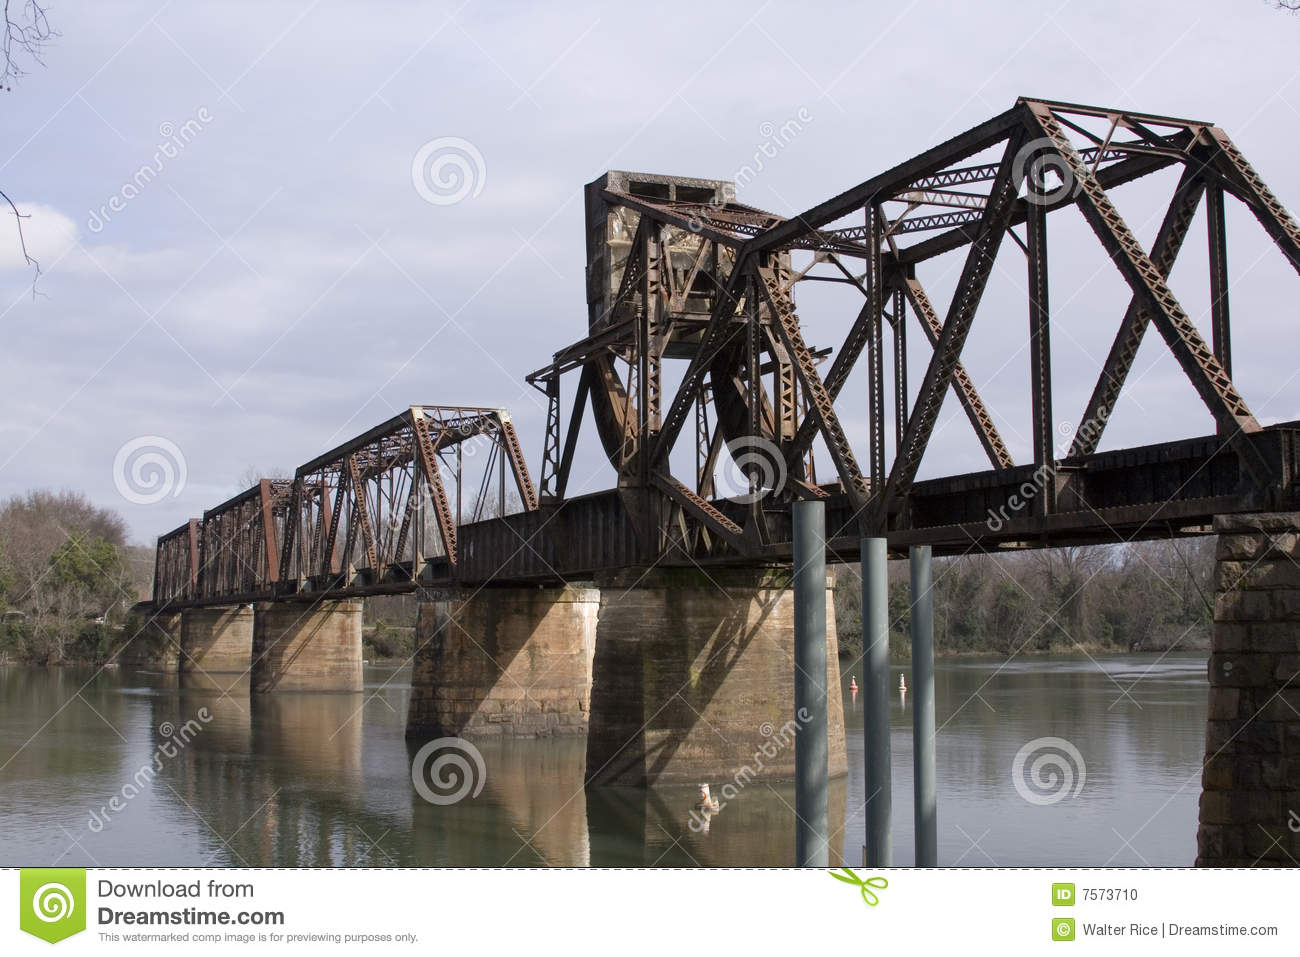 Old Railway Bridge Stock Photo - Image: 7573710